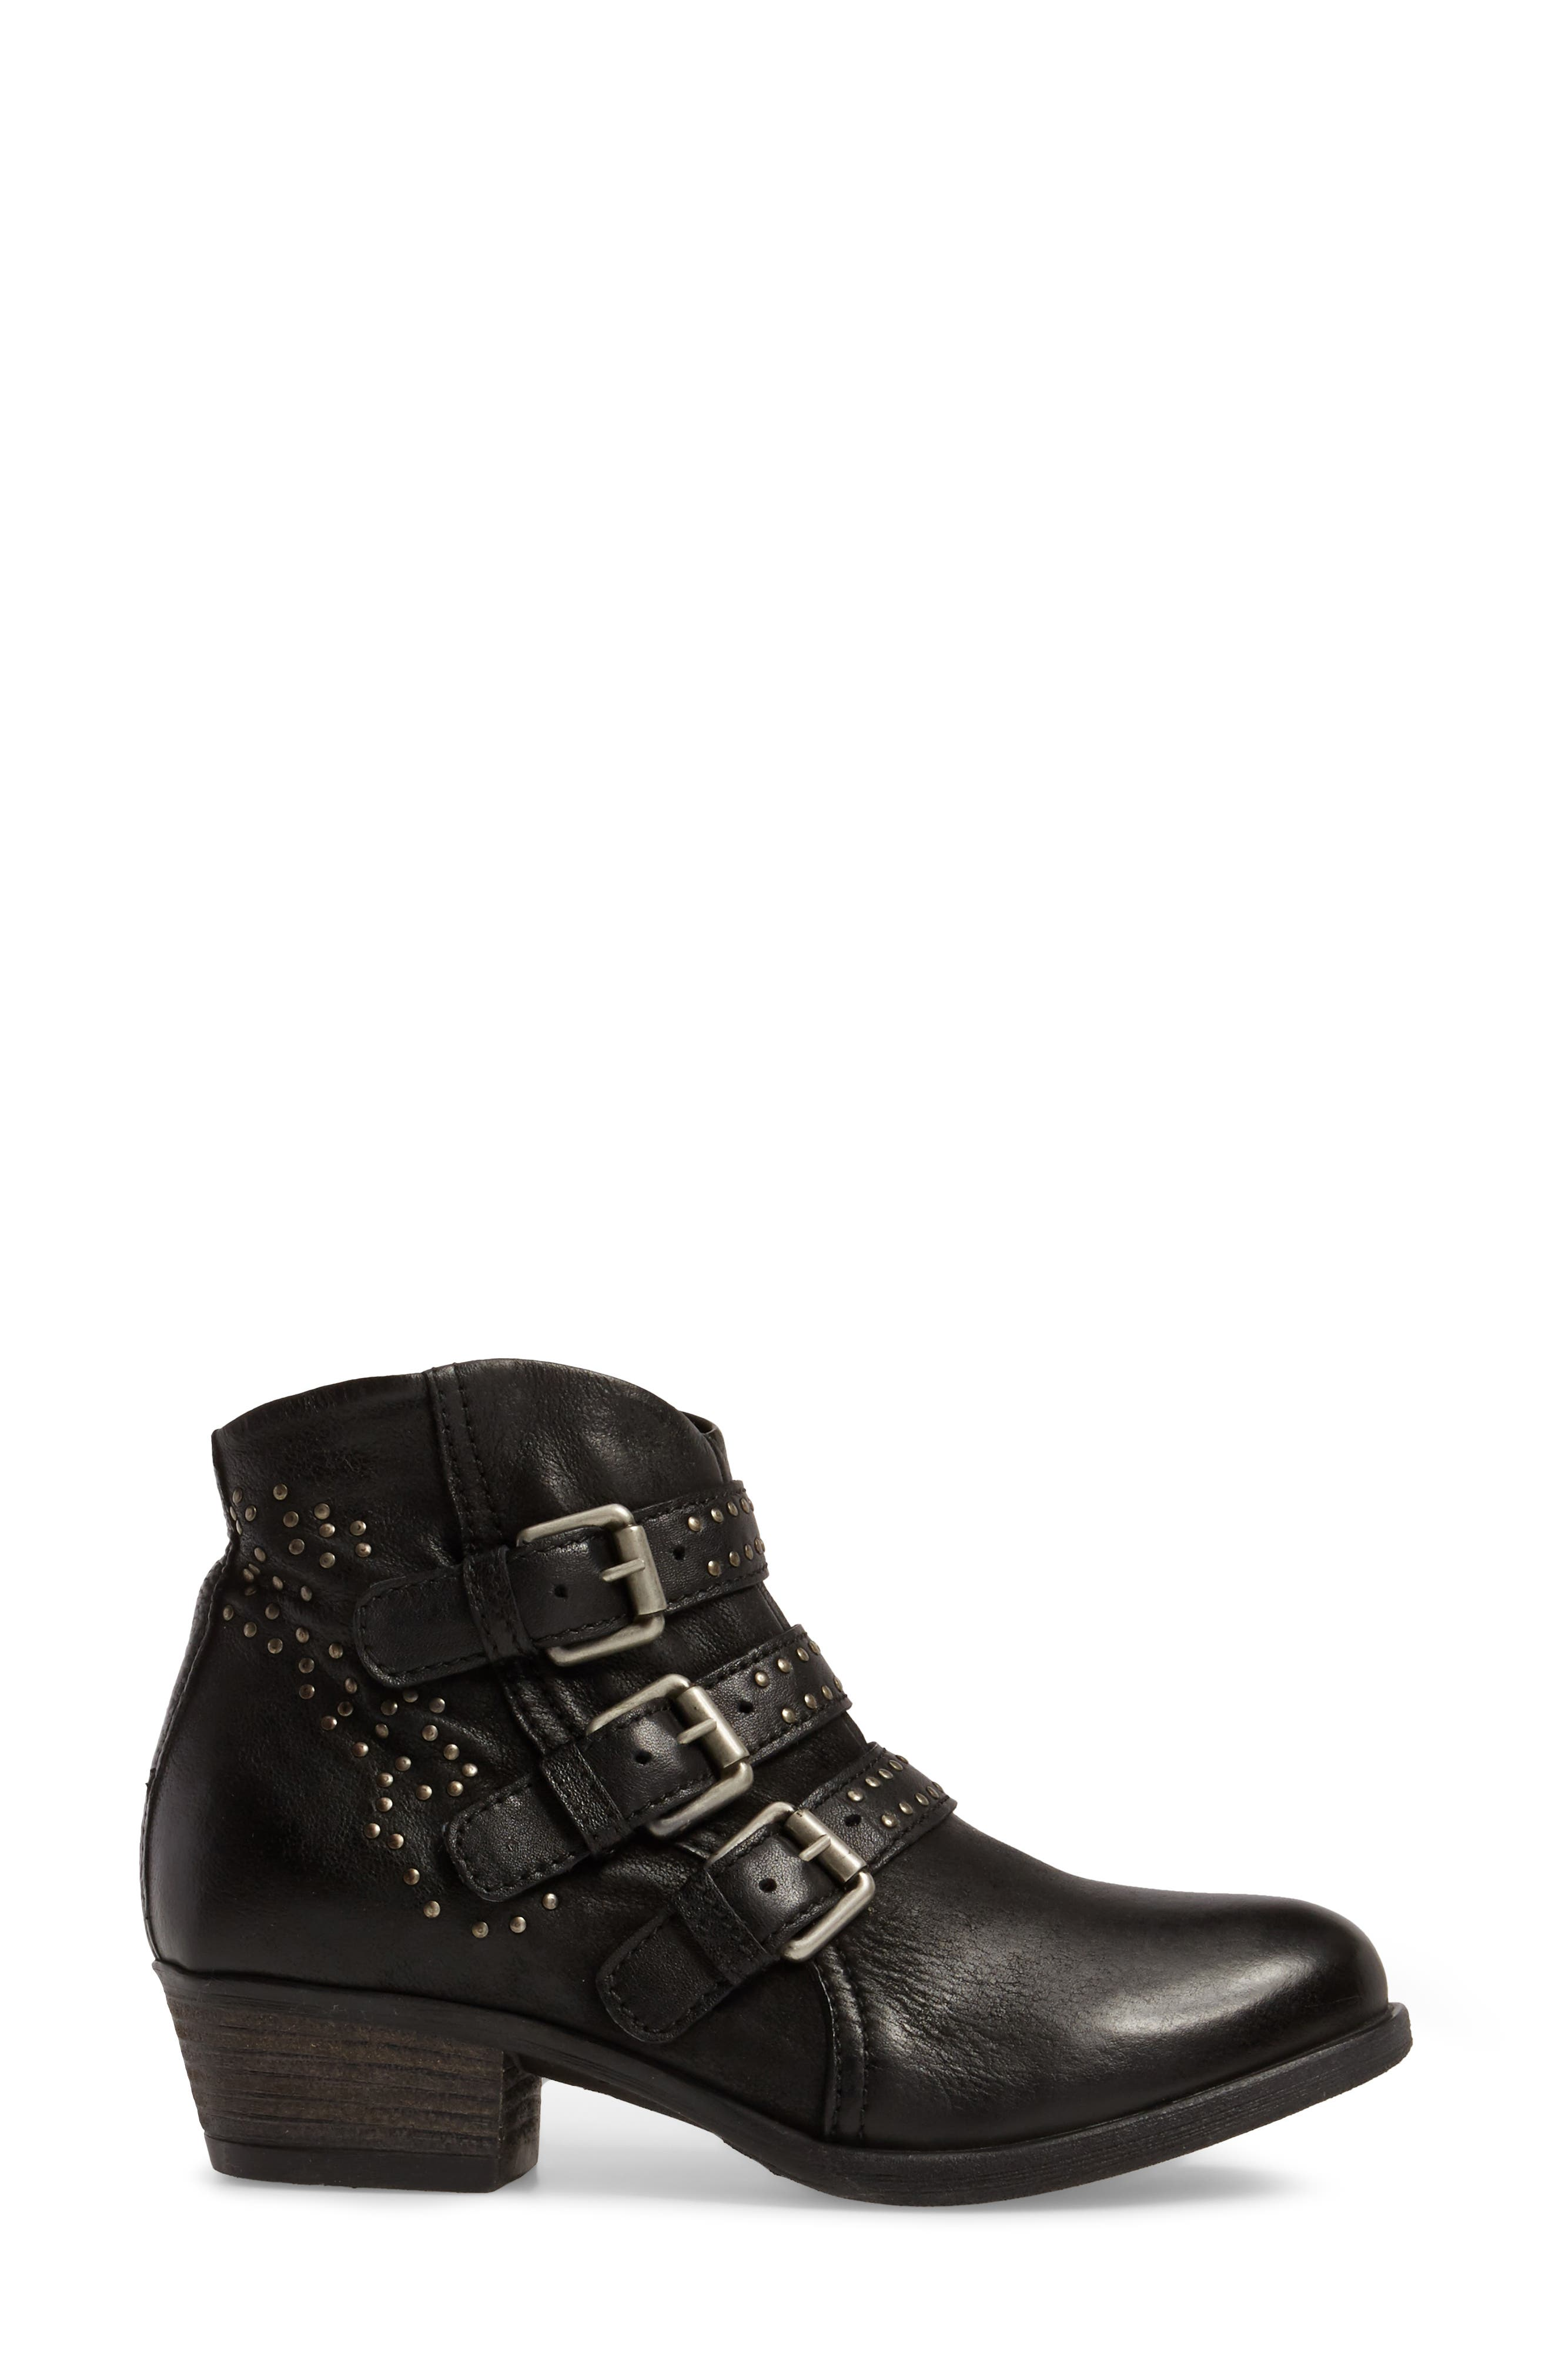 Barclay Studded Moto Bootie,                             Alternate thumbnail 3, color,                             001